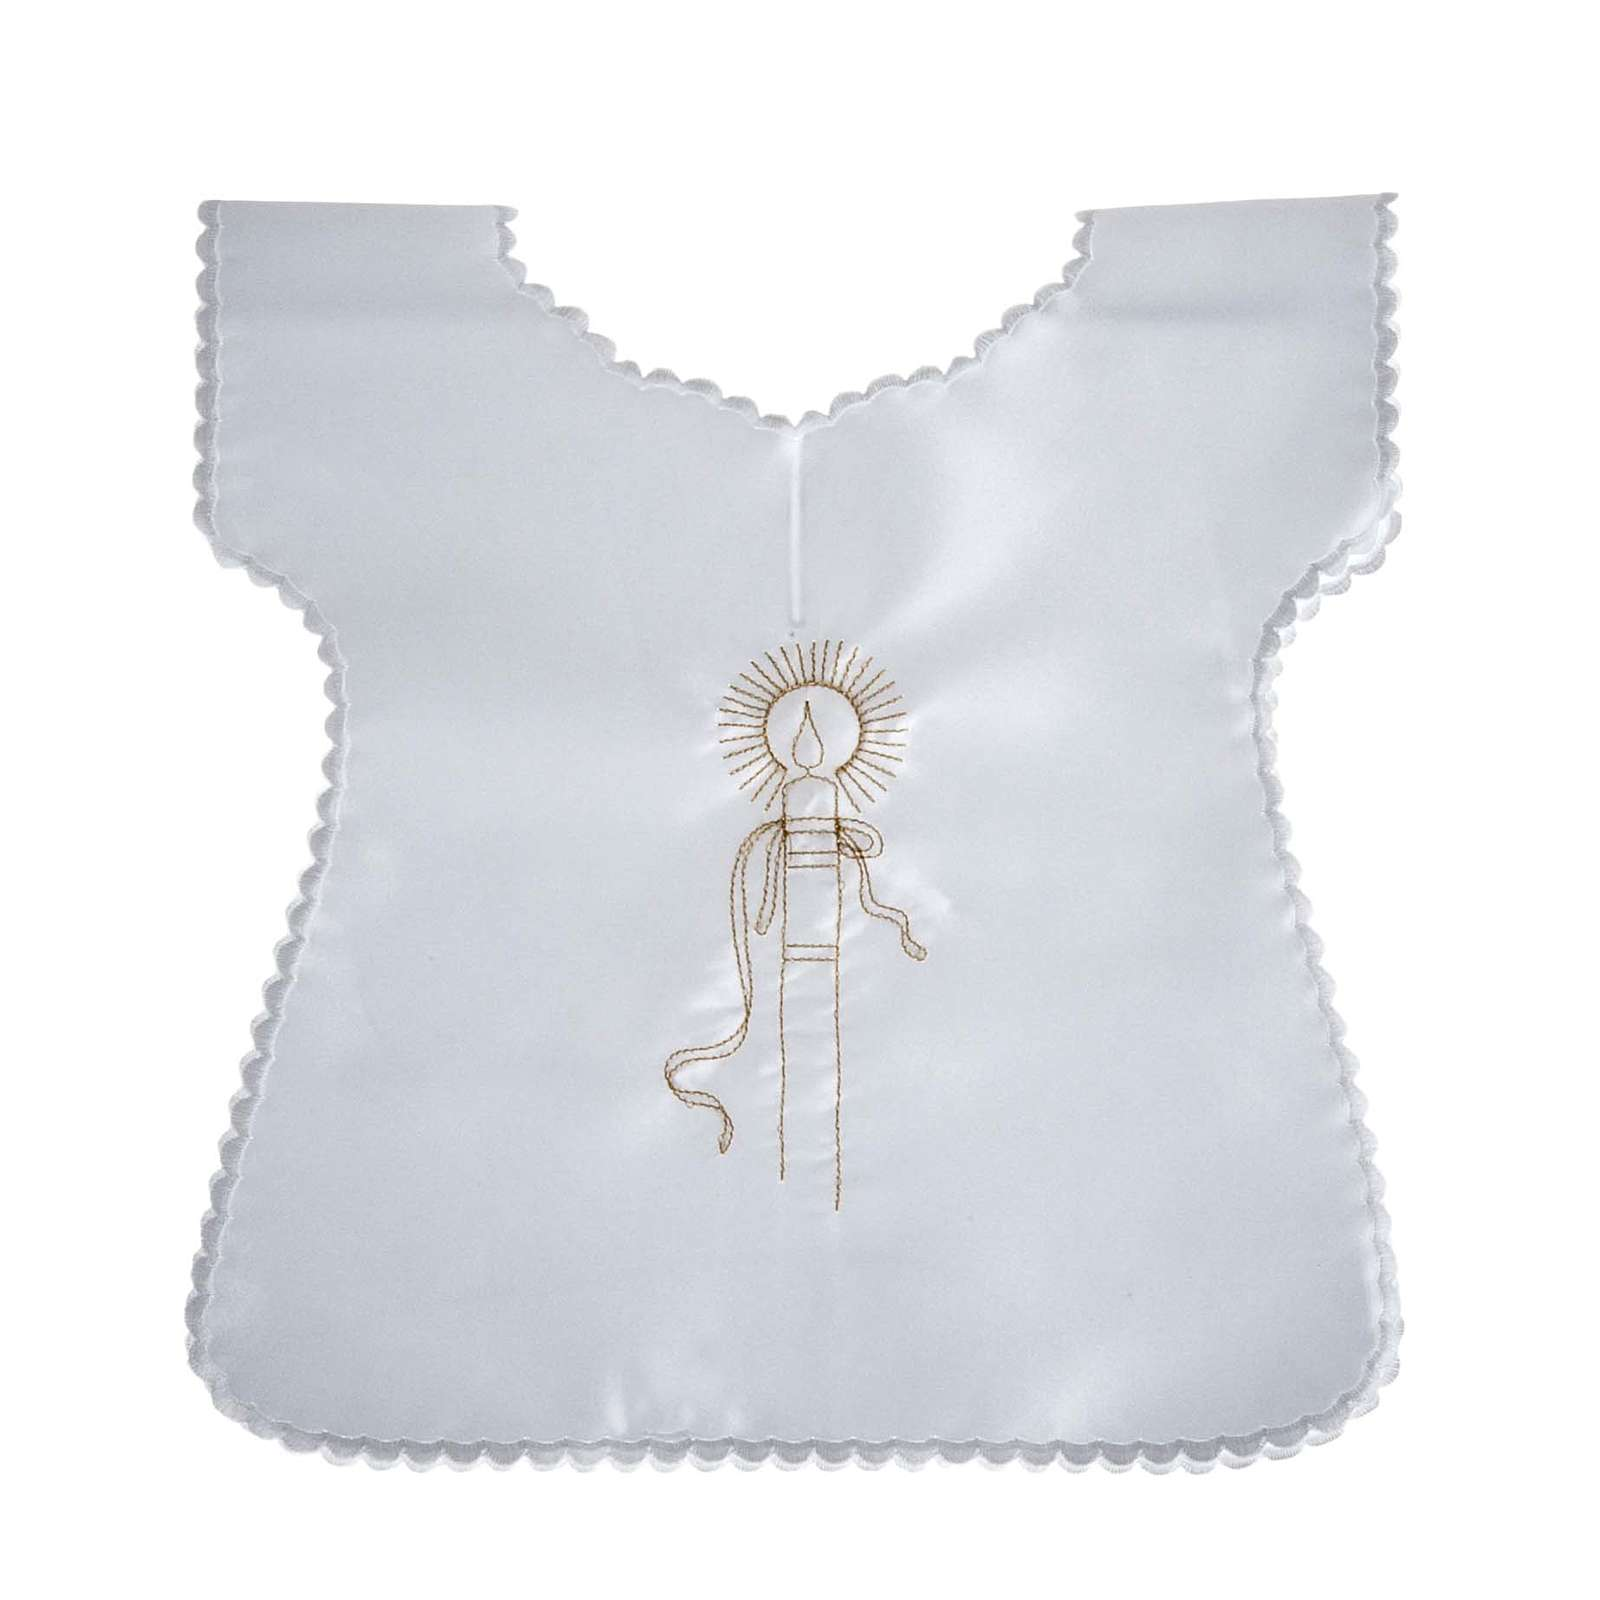 Baptismal gown in satin 4